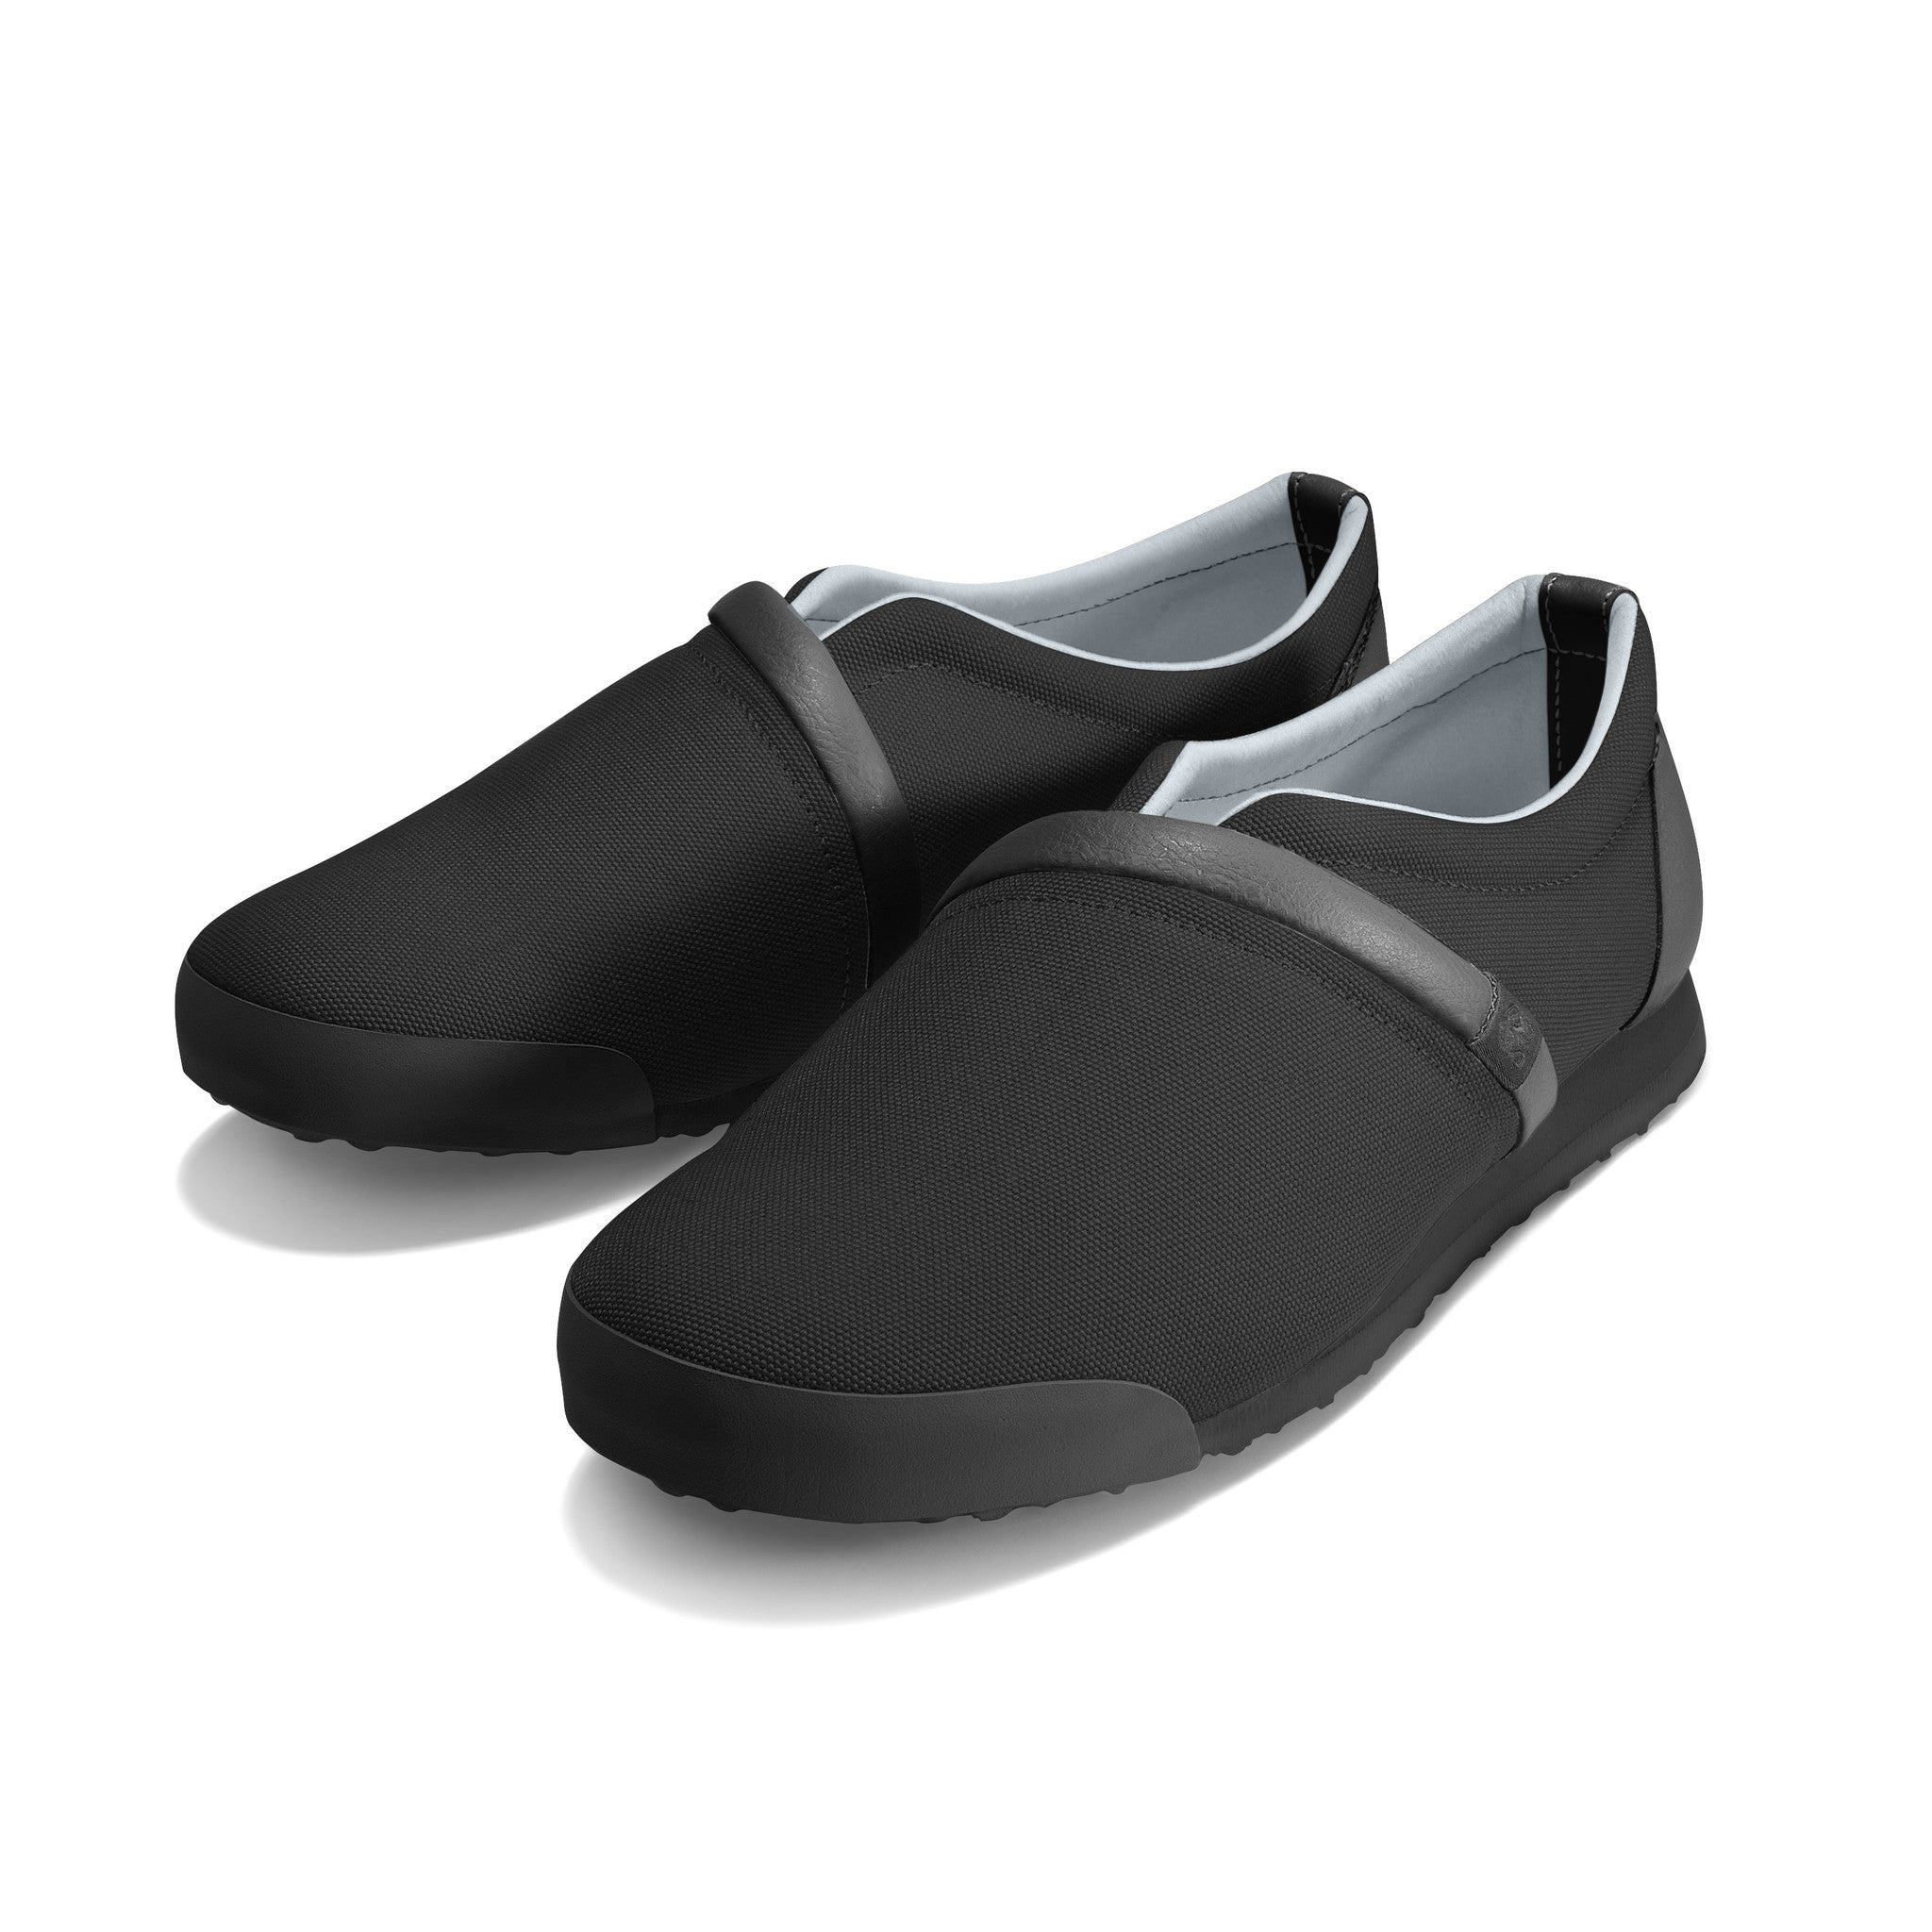 Jet_Black - Common Ground Footwear Shoes Left Perspective View